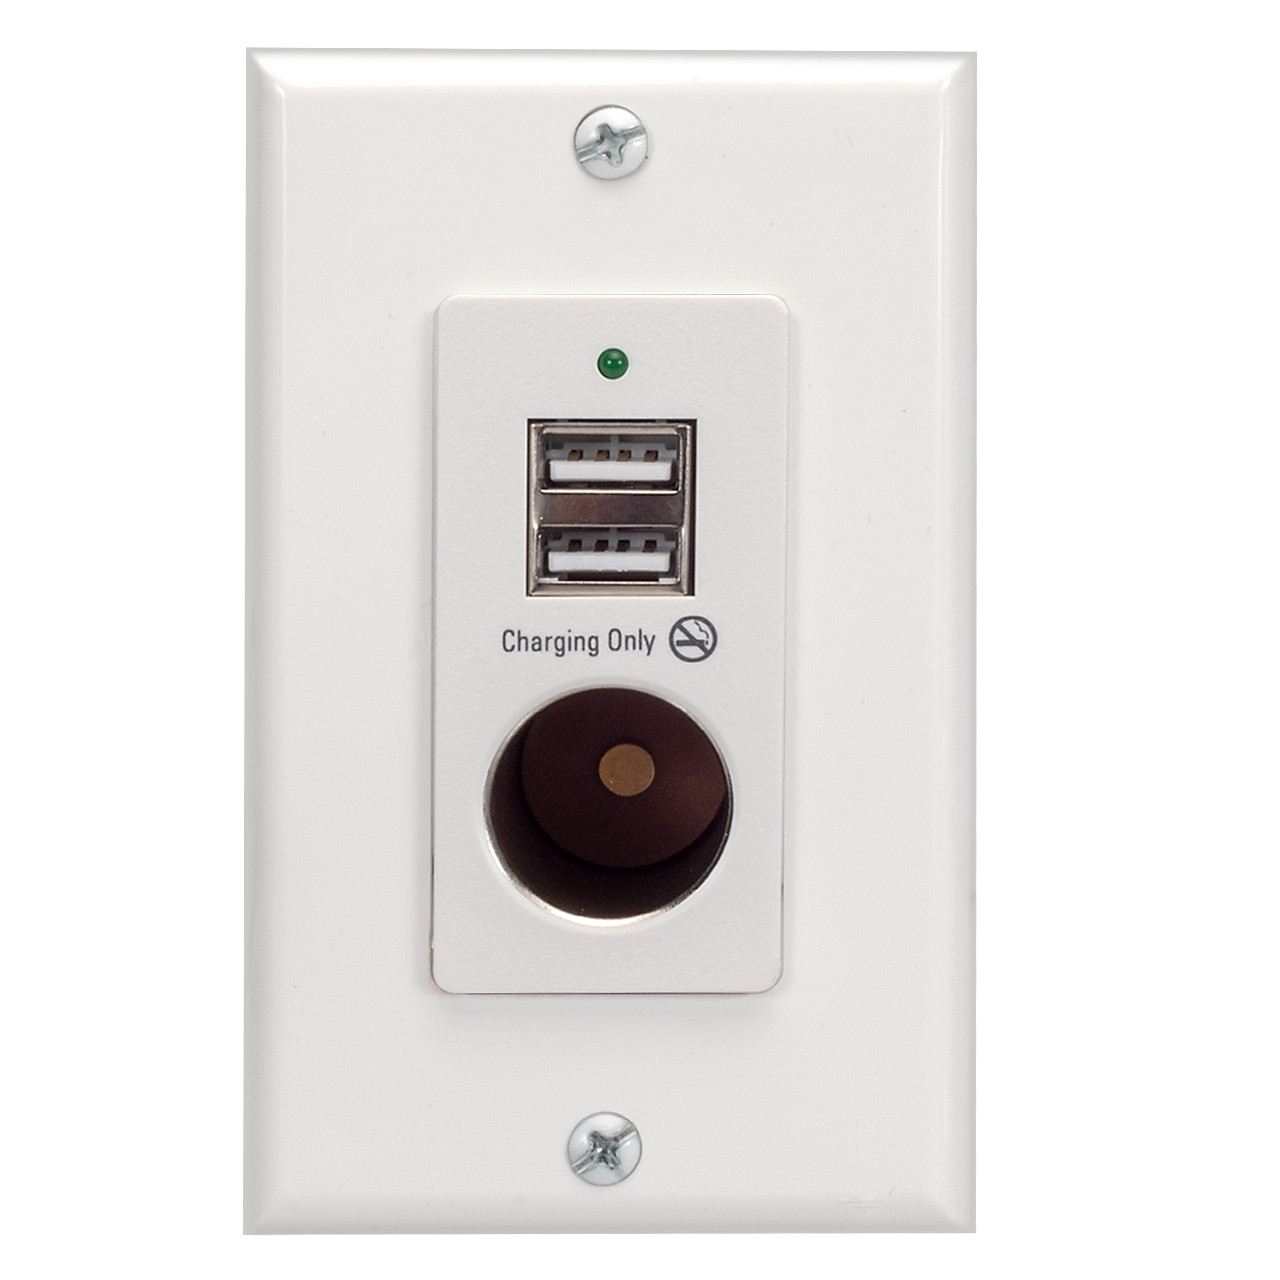 WC-12V Black or White on parallel outlet wiring diagram, power outlet wiring diagram, usb lighting diagram, phone outlet wiring diagram, bluetooth wiring diagram, telephone outlet wiring diagram,